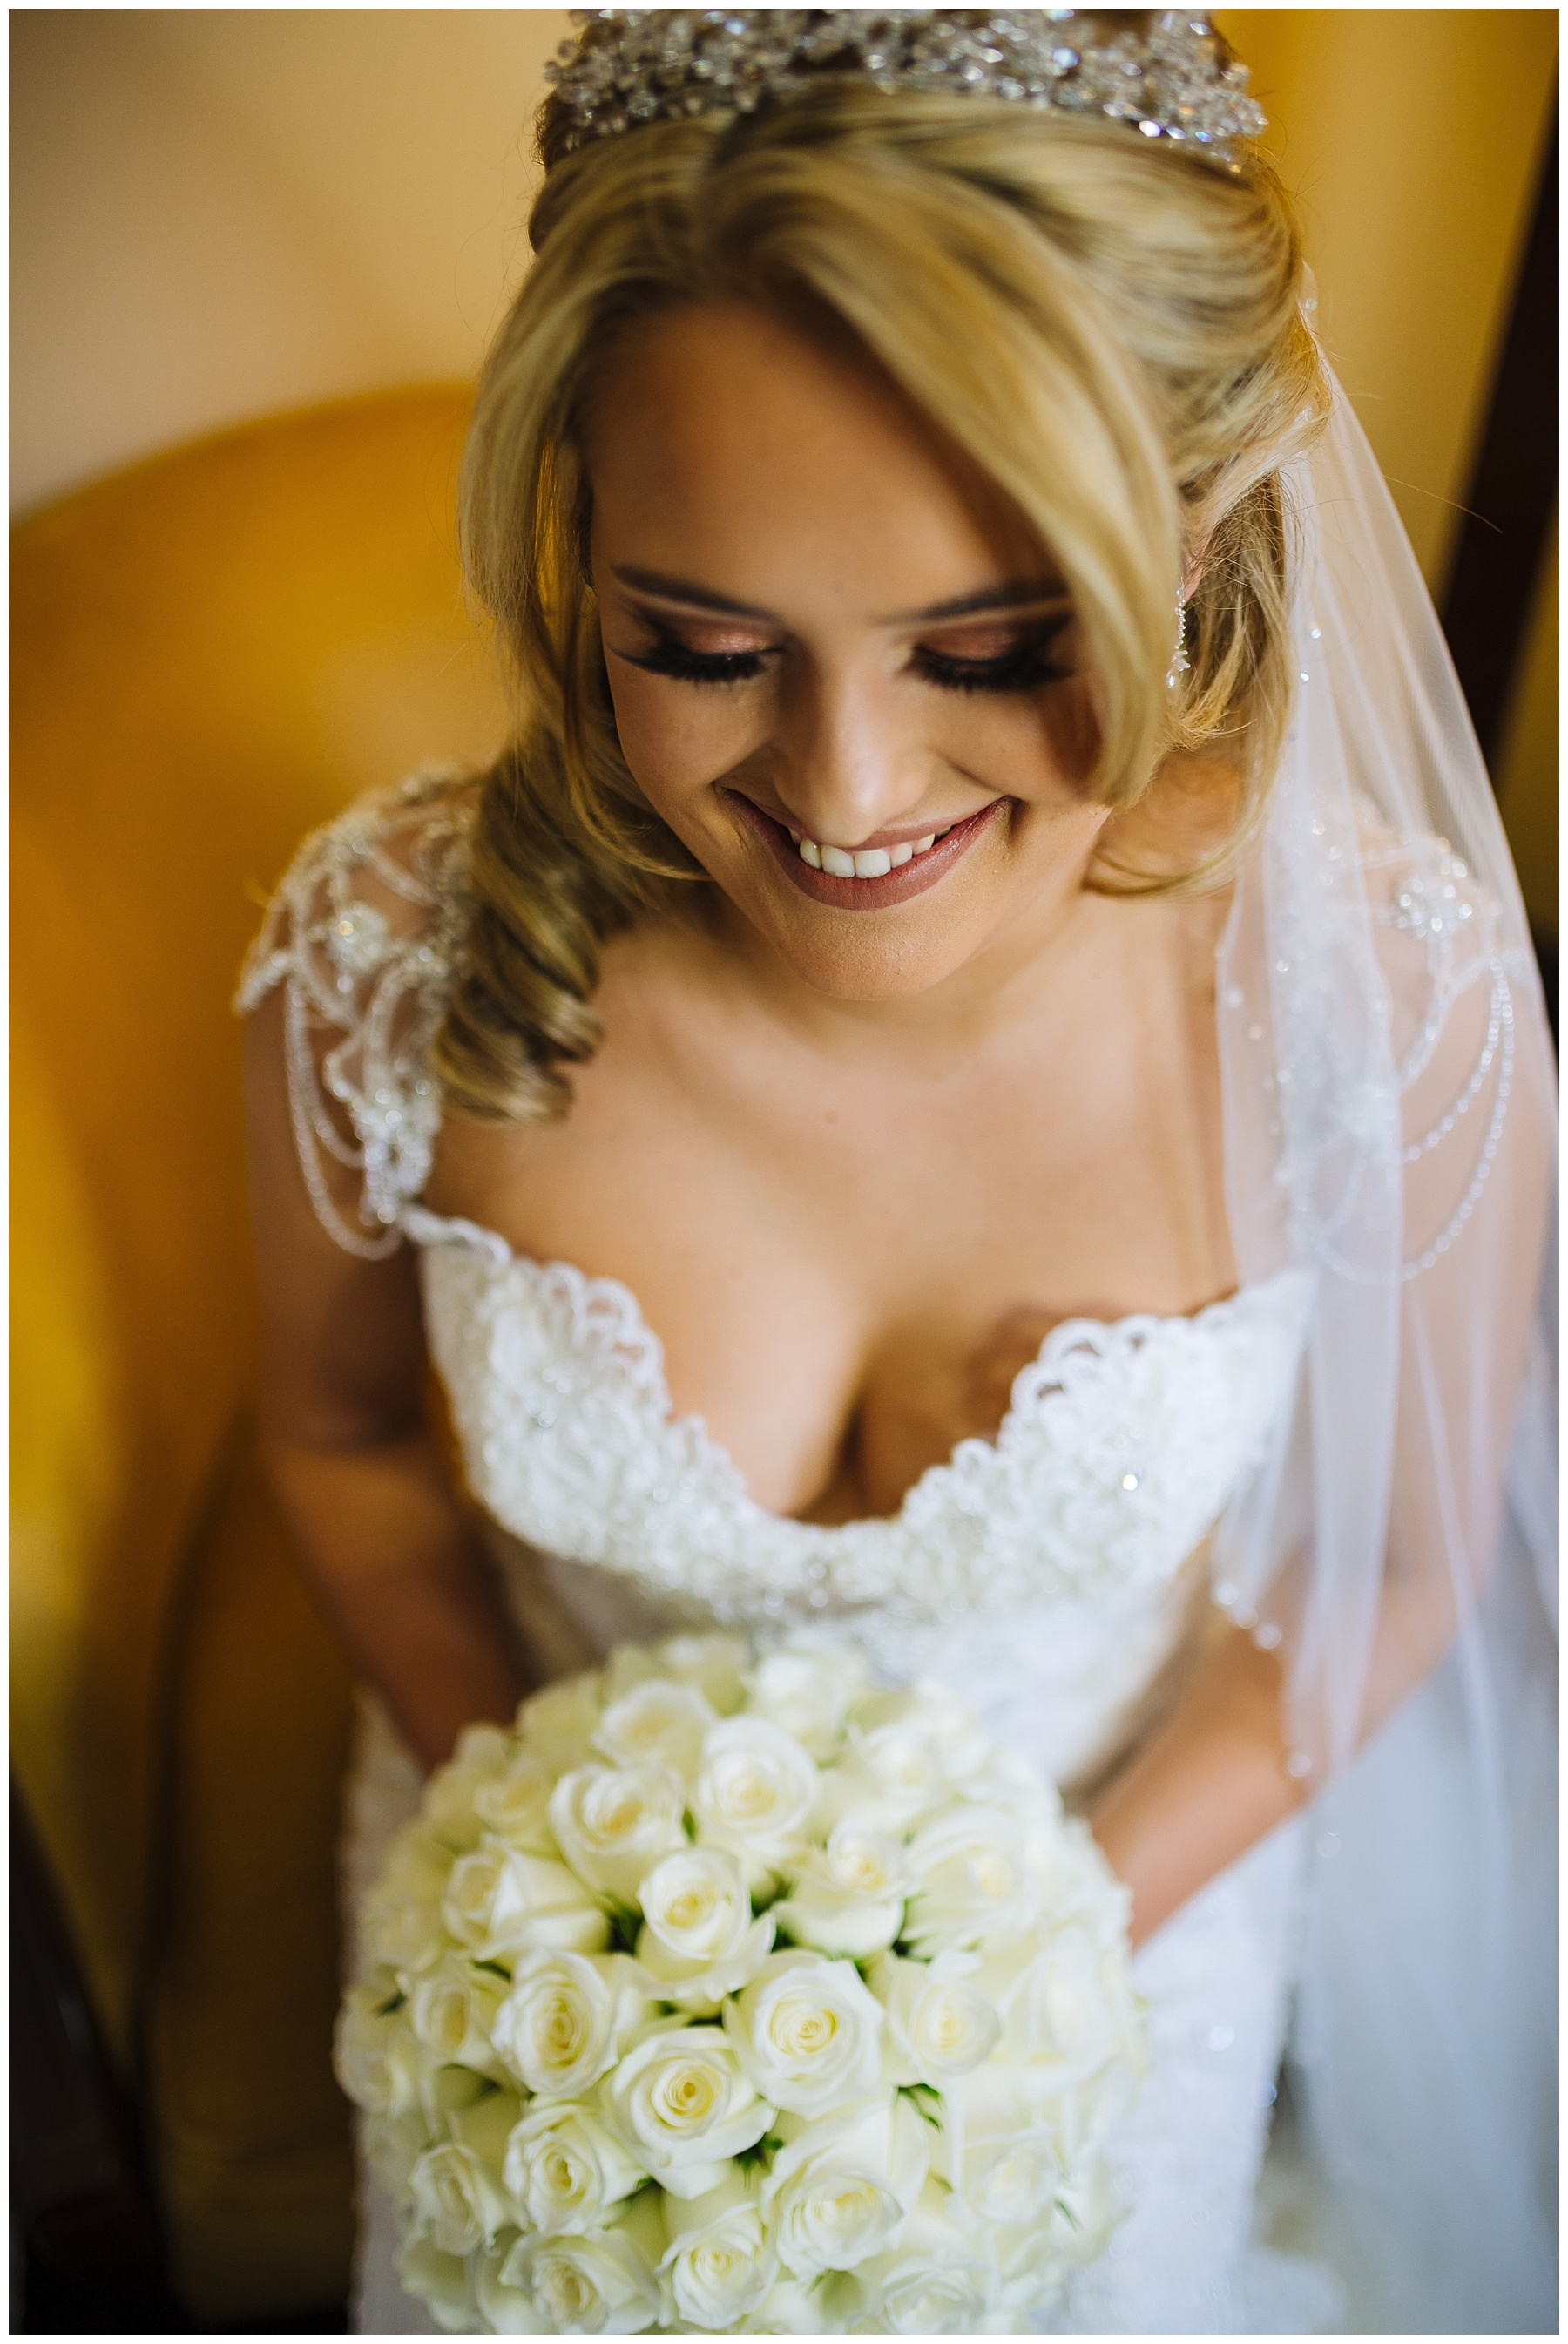 stunning bride smiles for portrait before wedding